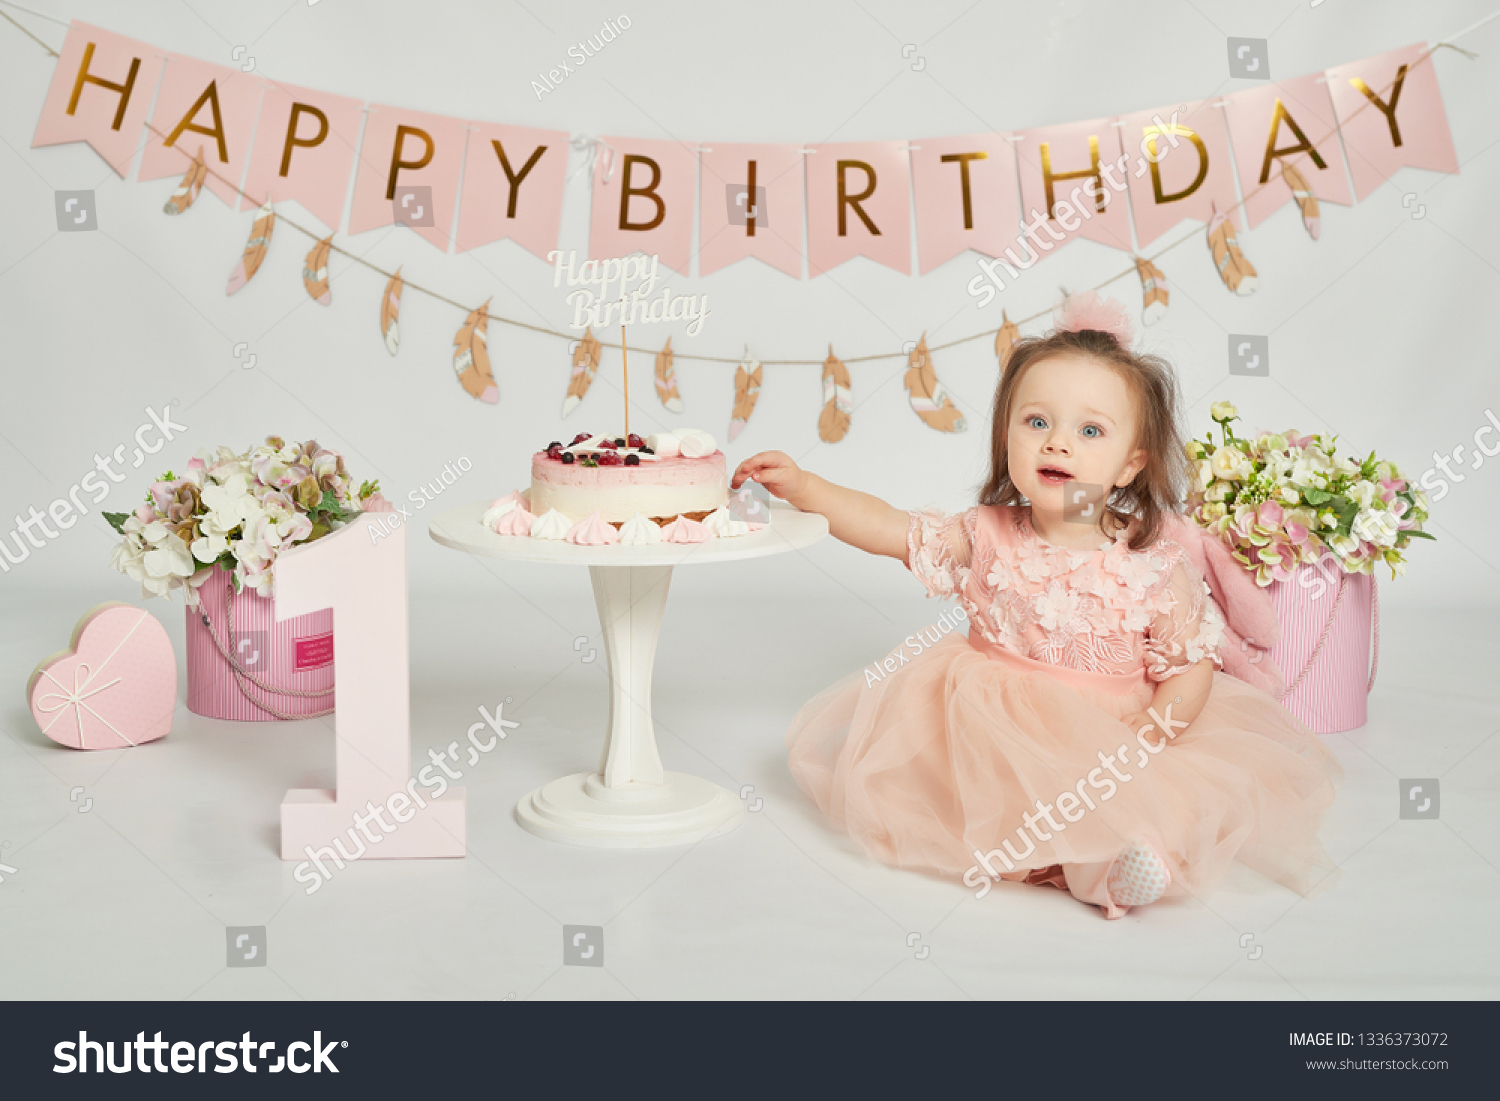 Fantastic Girl Birthday Cake 1 Year Old Stock Photo Edit Now 1336373072 Funny Birthday Cards Online Alyptdamsfinfo